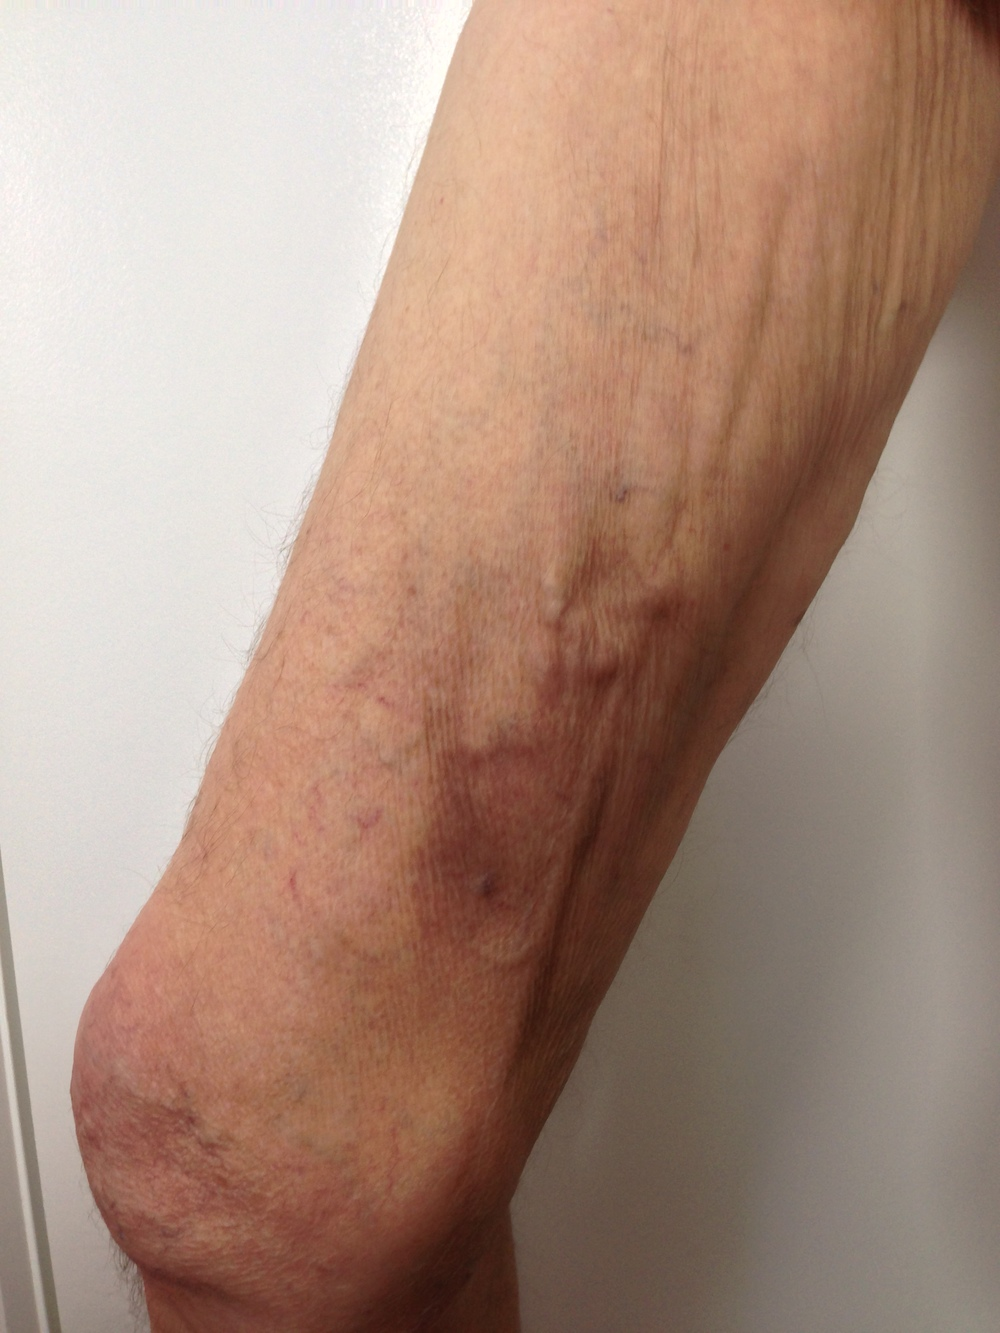 Treatment: EndoVenous Laser Ablation and Ultrasound Guided Sclerotherapy. Results at 3 months.